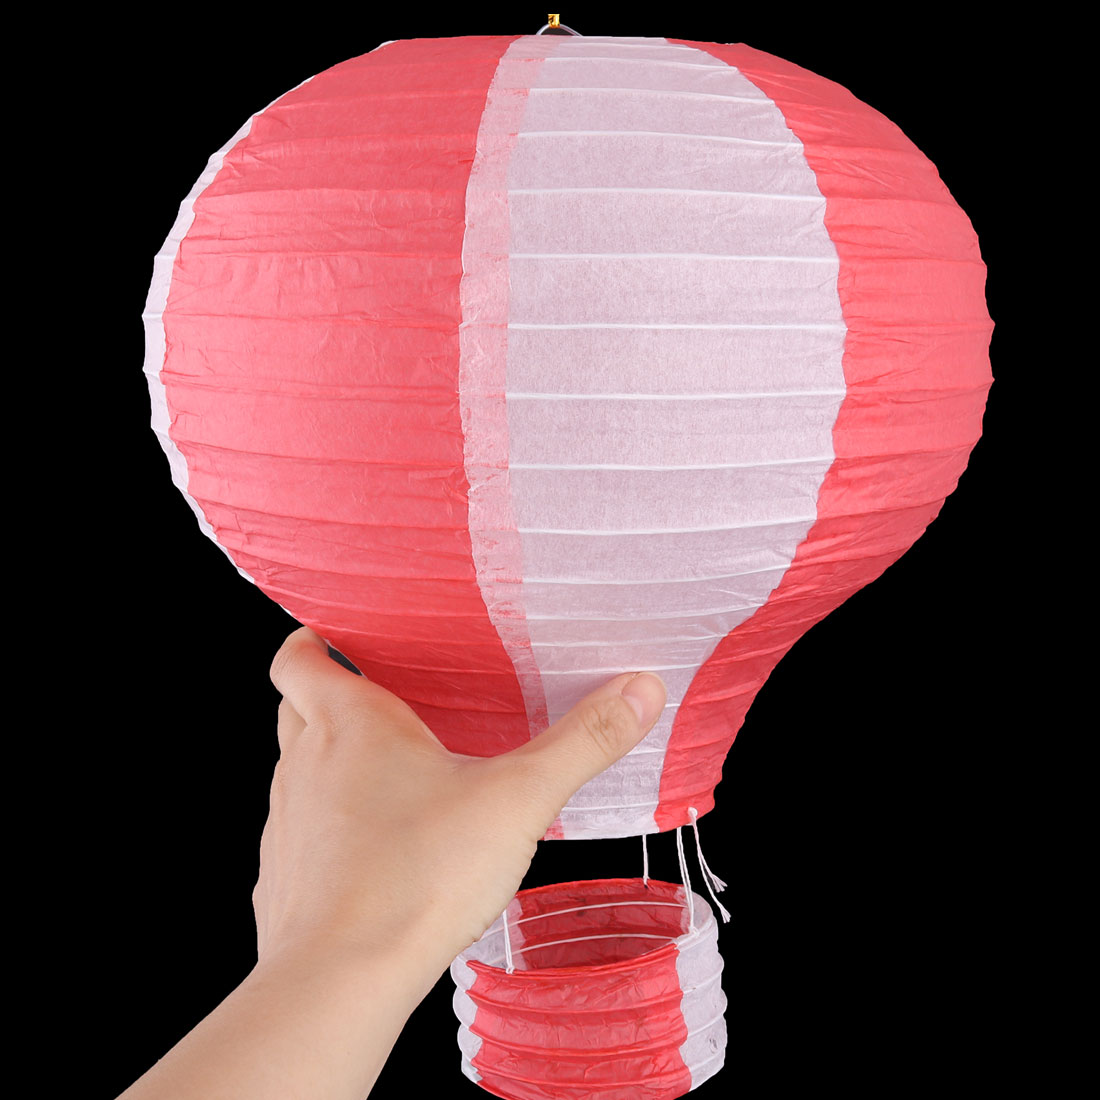 Paper Lightless Hanging Decor Hot Air Balloon Lantern Red White 10 Inch Dia - image 4 de 6